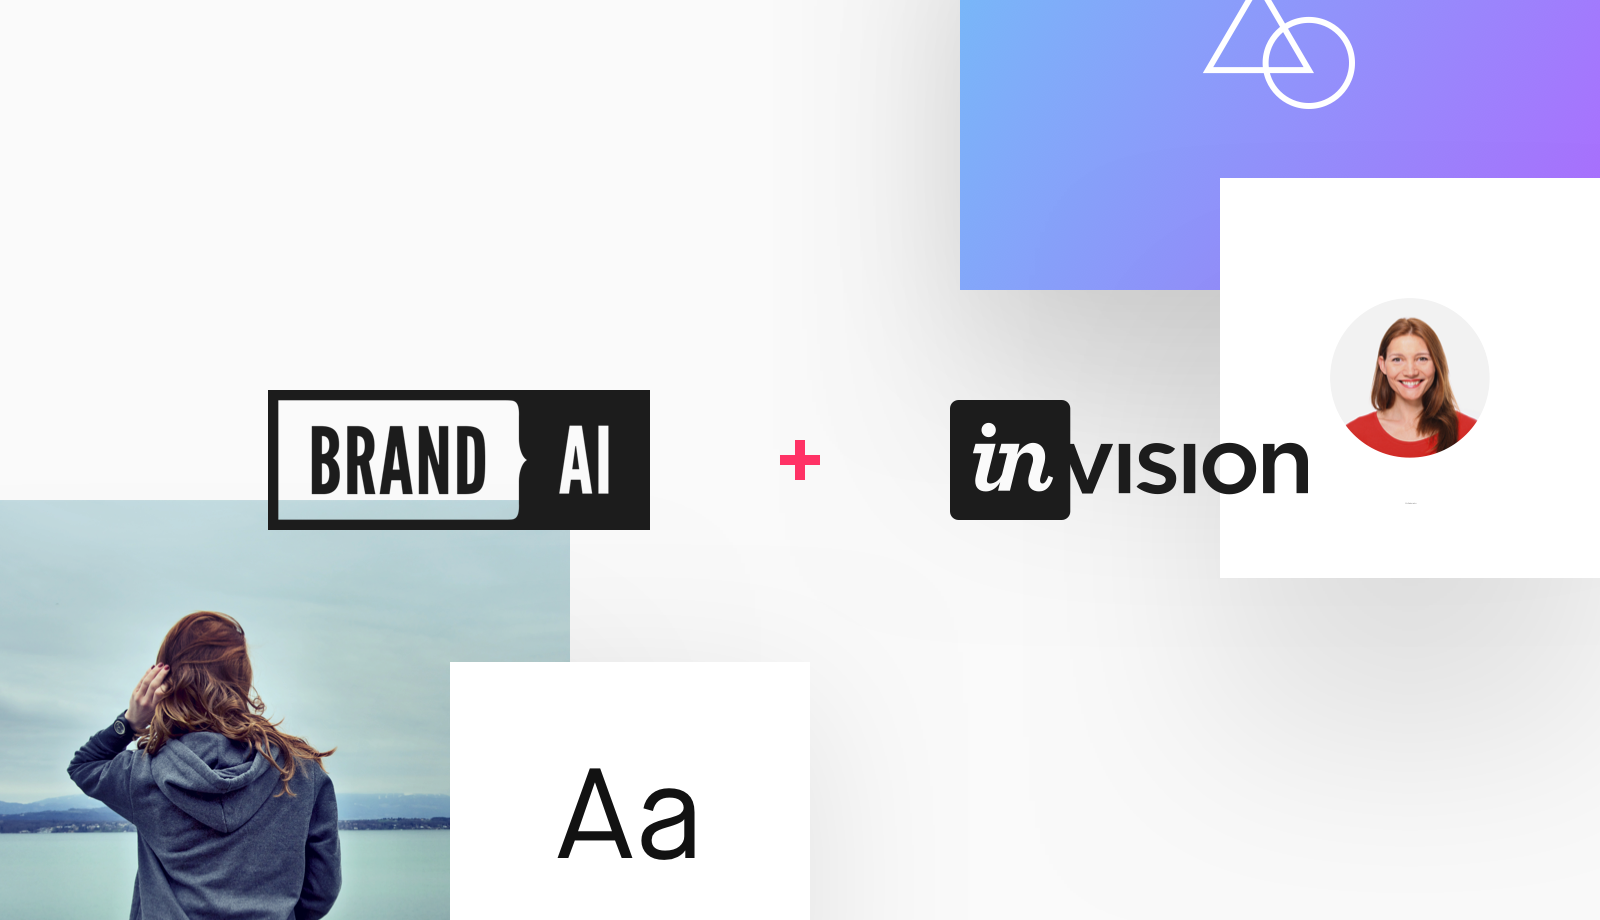 Brand.ai team has joined InVision